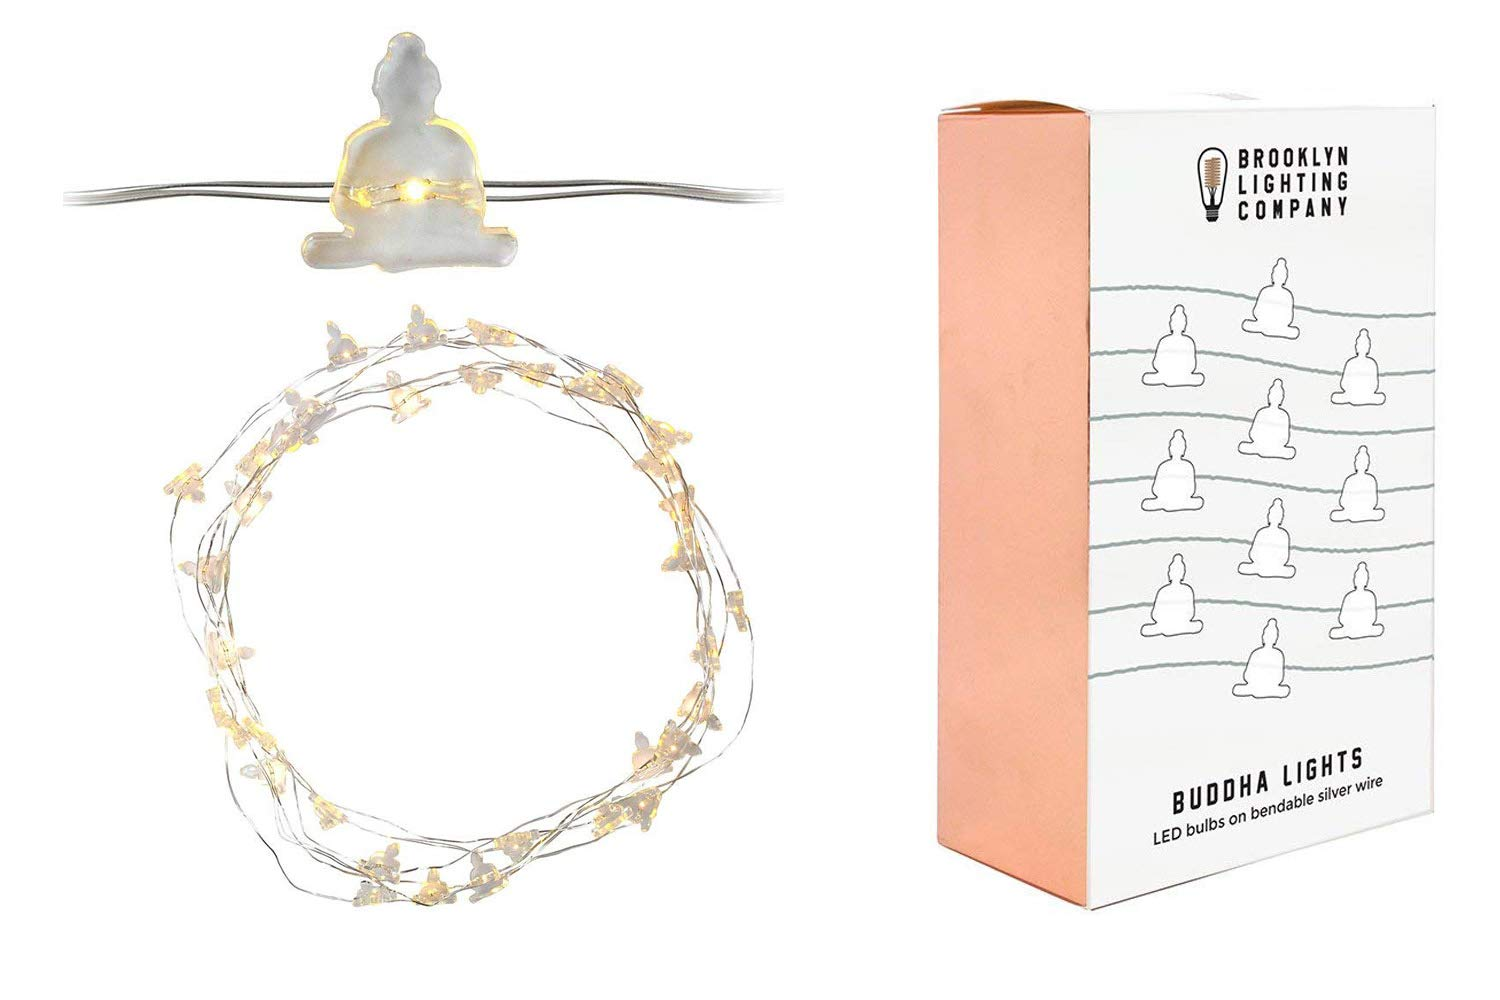 Brooklyn Lighting Company LED Wire Lights, LED String Lights, Battery Operated String Lights with 36 Buddha Shaped Warm LEDs for Party, Bedroom, Kitchen, Patio, Deck and More, 12 Feet Long